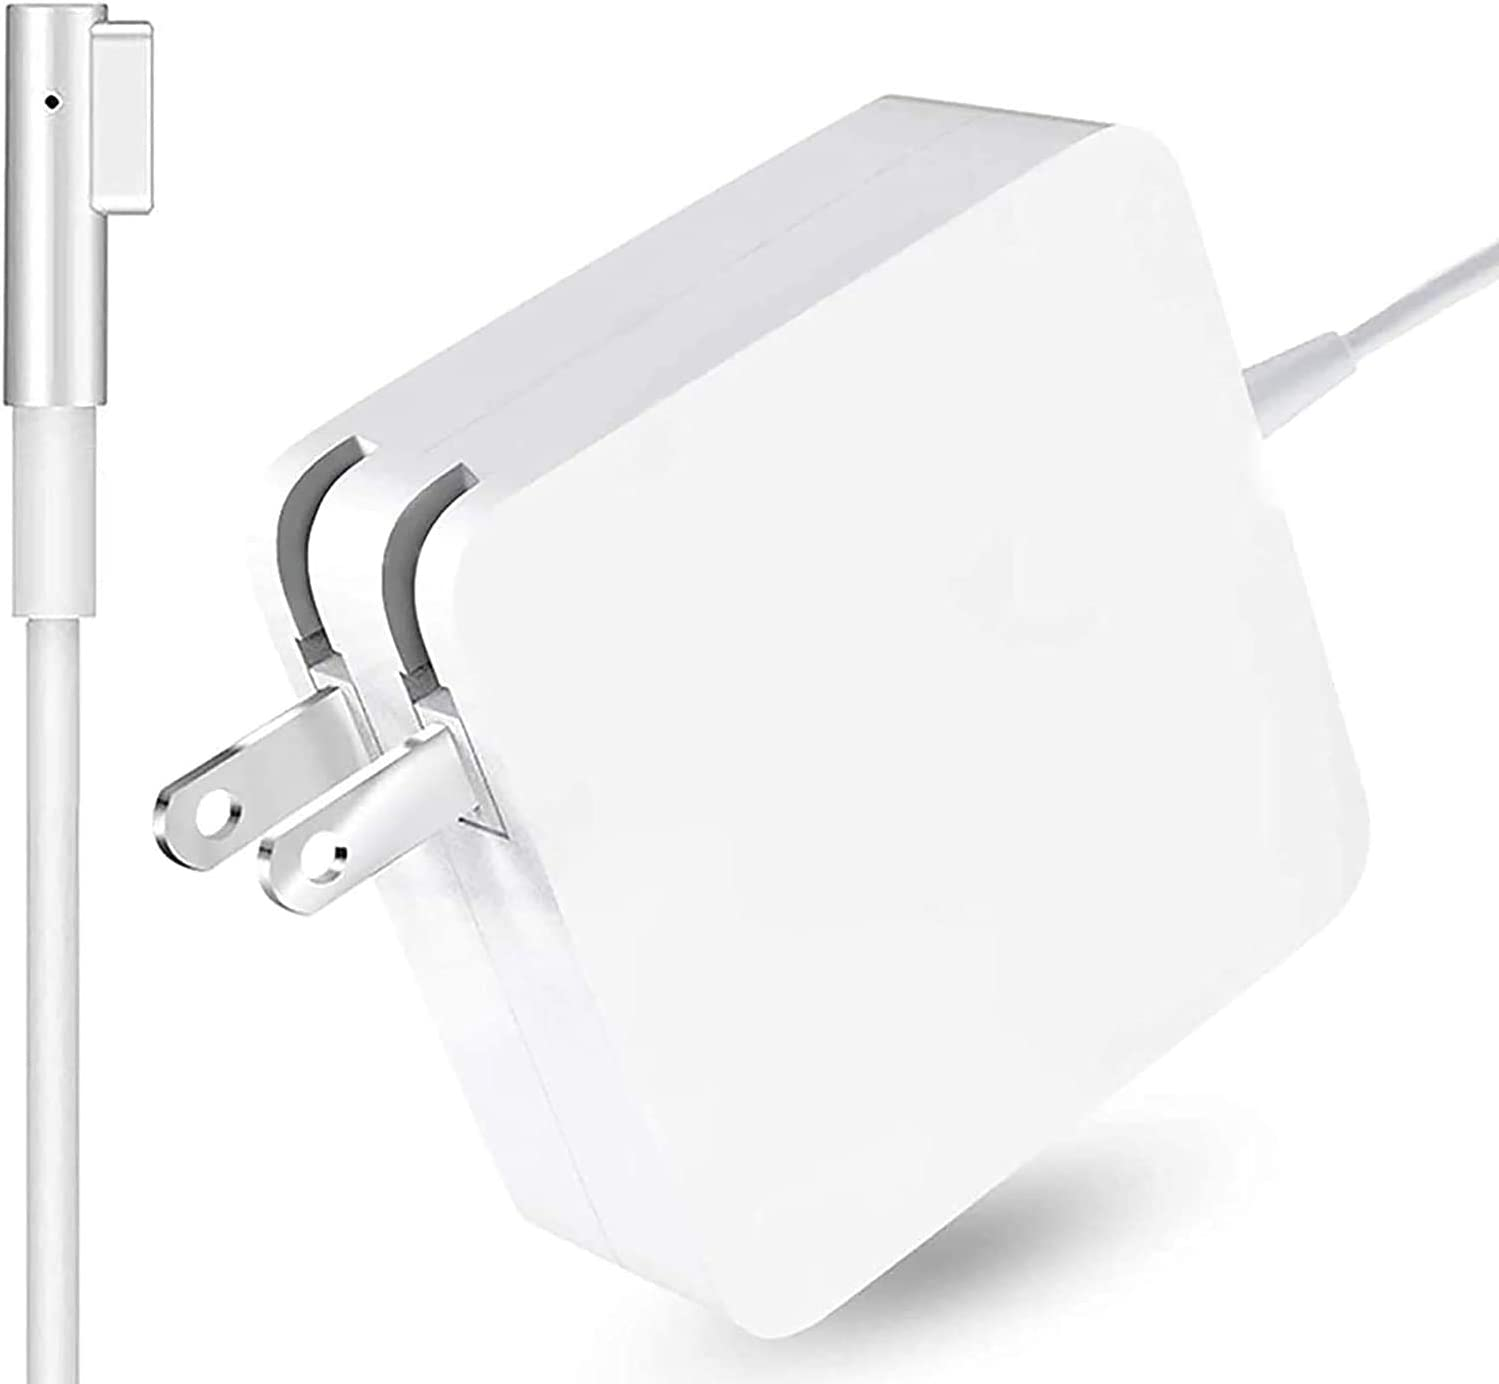 Mac Book Pro Charger, Replacement 60W L-Tip Power Adapter Charger for MacBook Pro 13-Inch Before Mid 2012